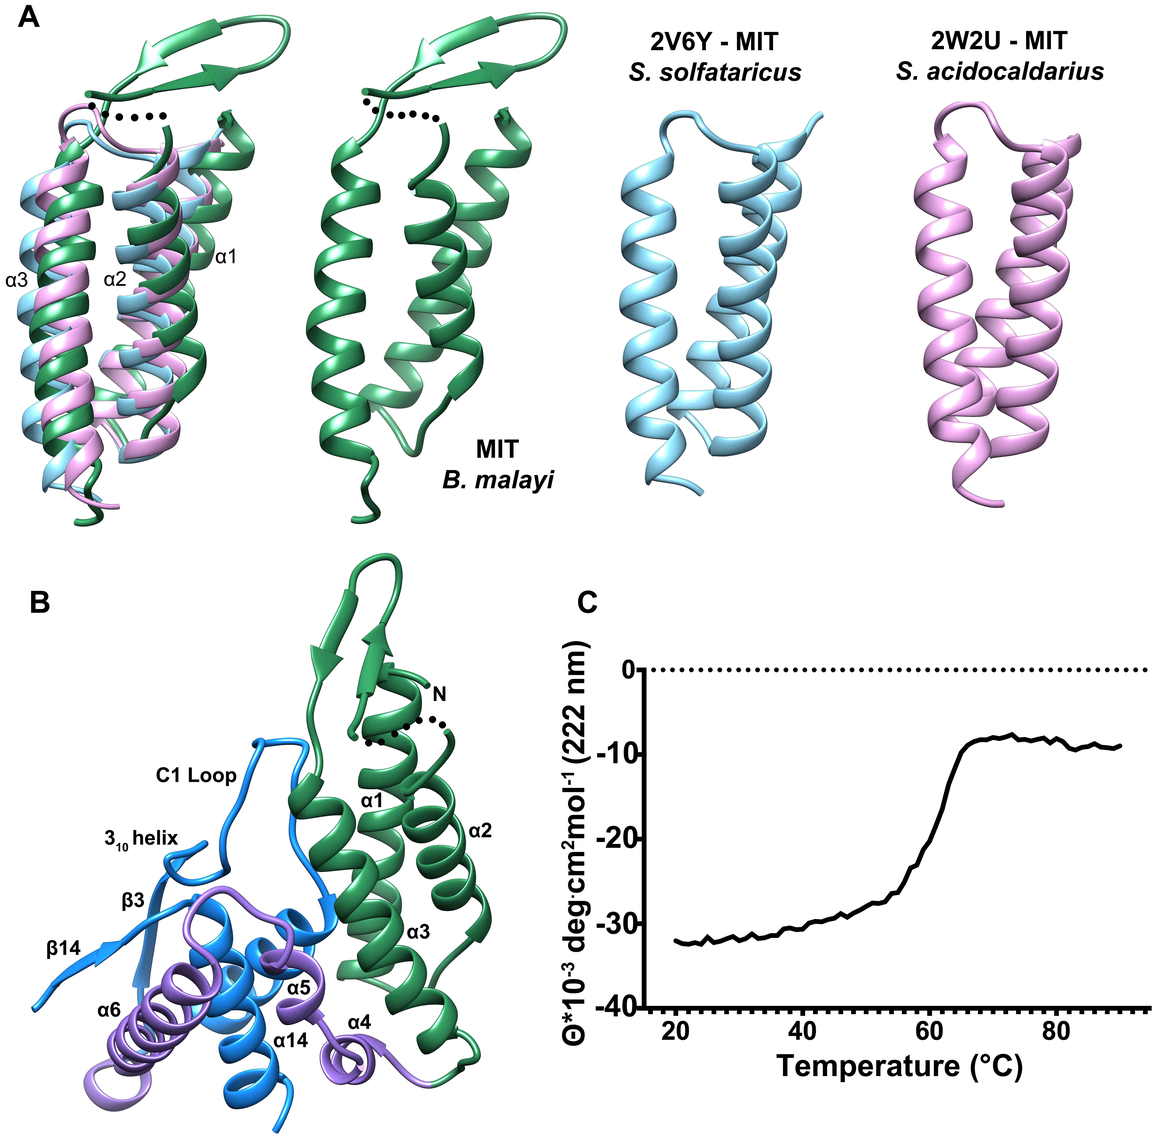 Comparison of the N-terminal MIT-like domain of T6PP with other MIT domains and its interaction with the HAD domain.